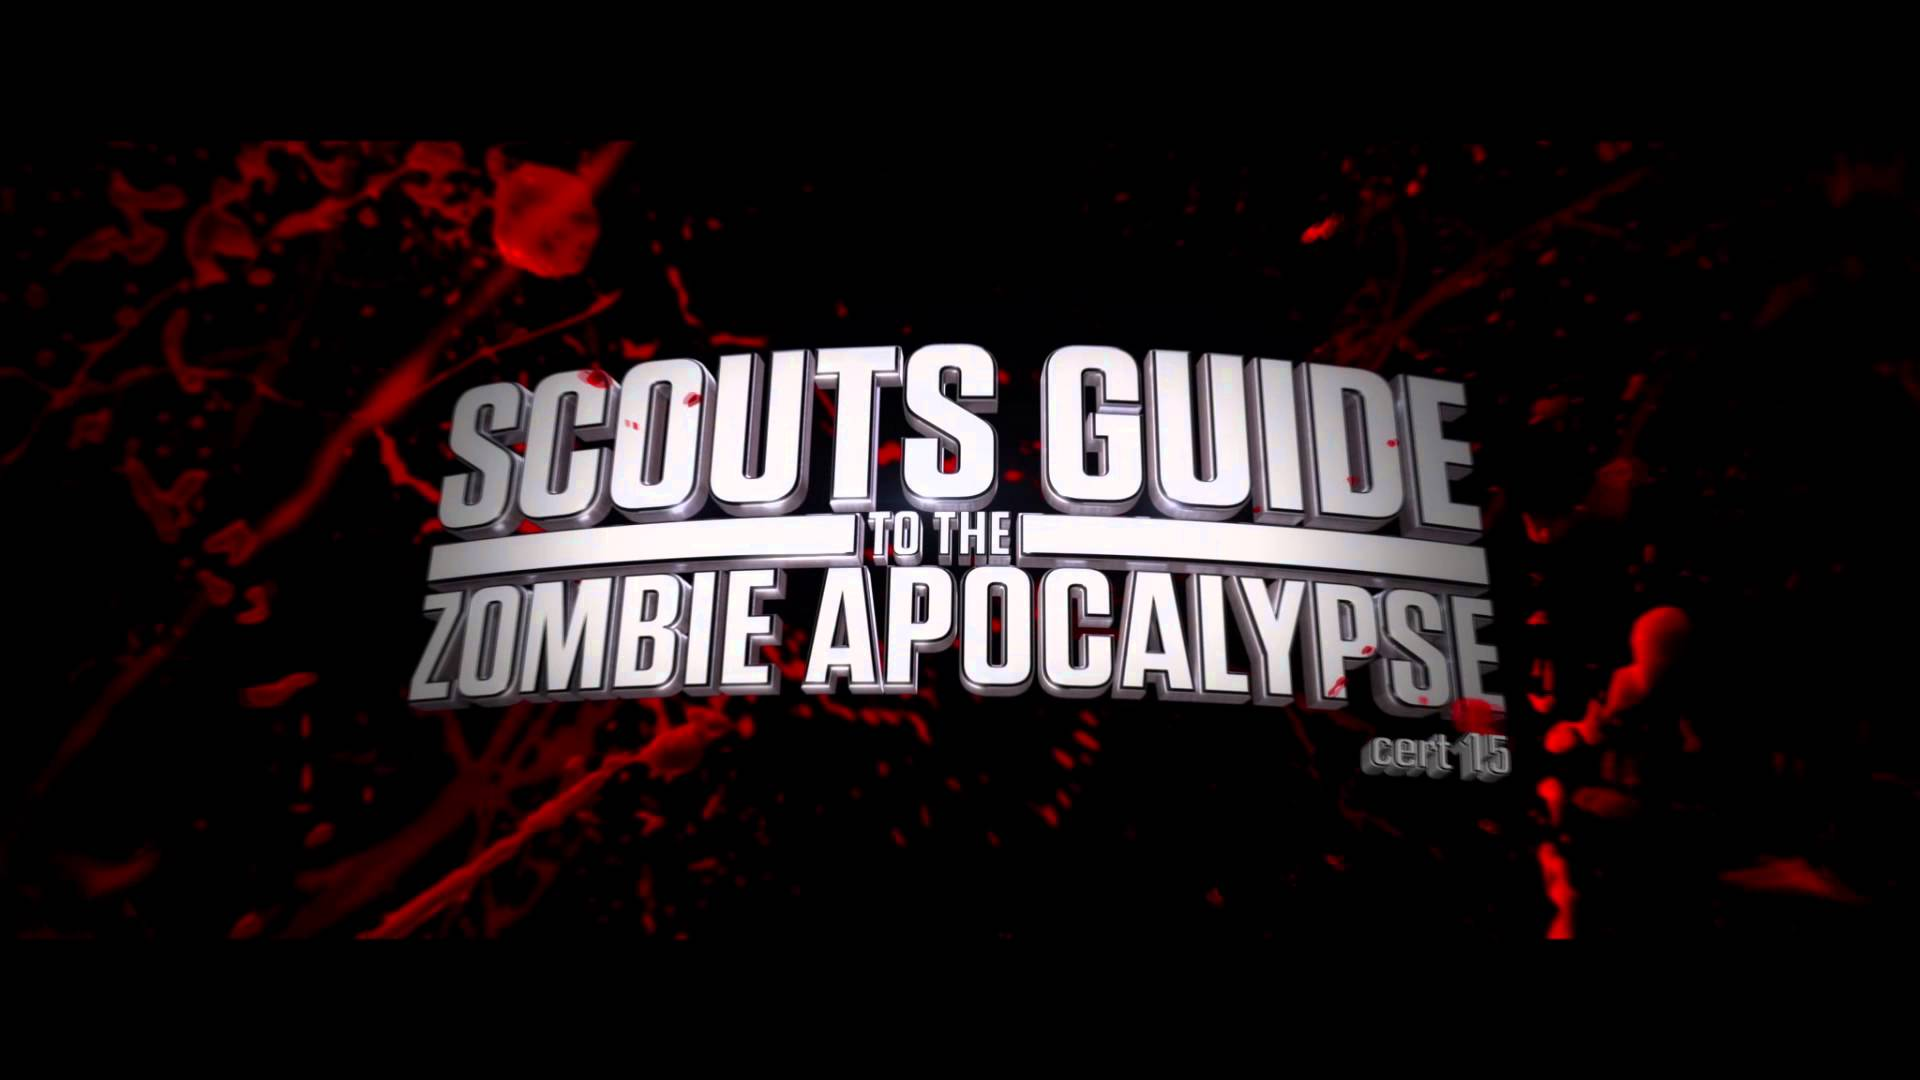 Scouts Guide to the Zombie Apocalypse | Zombie Nae Nae | Paramount Pictures UK